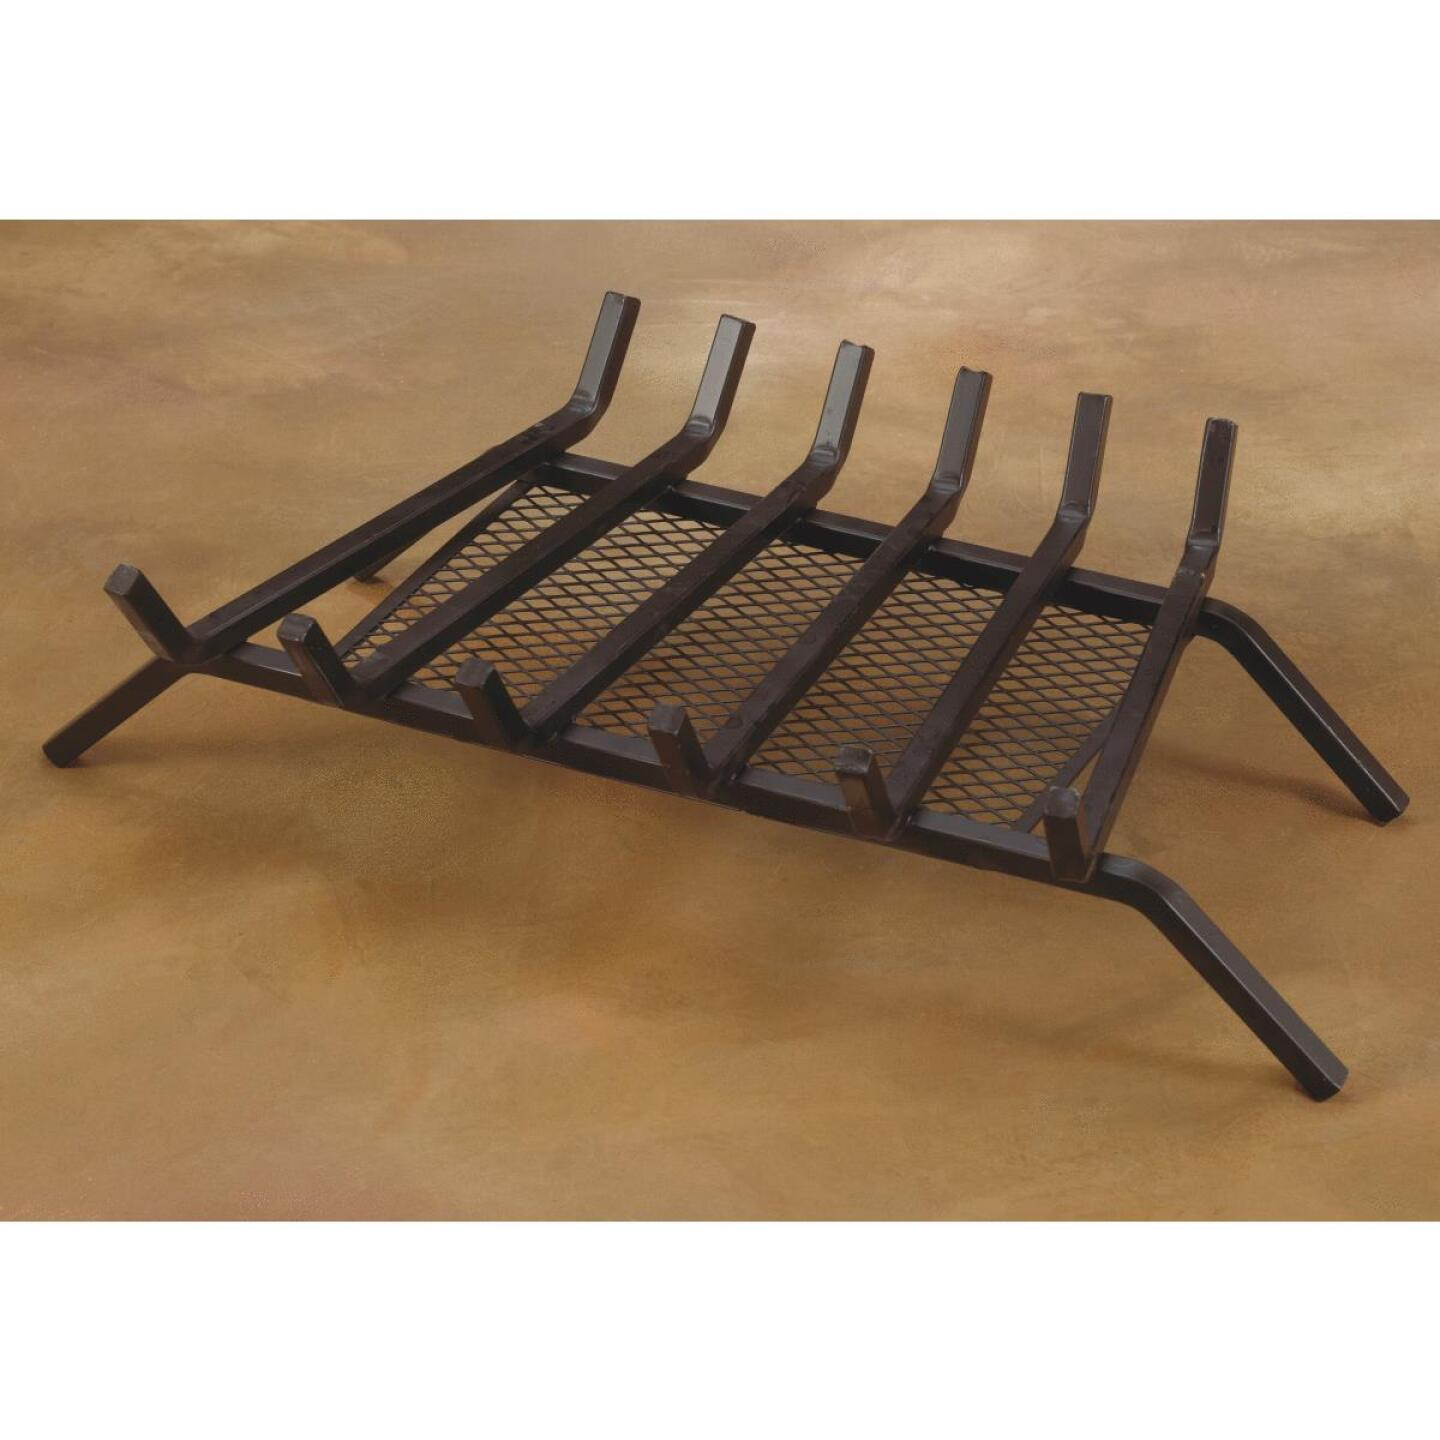 Home Impressions 27 In. Steel Fireplace Grate with Ember Screen Image 2